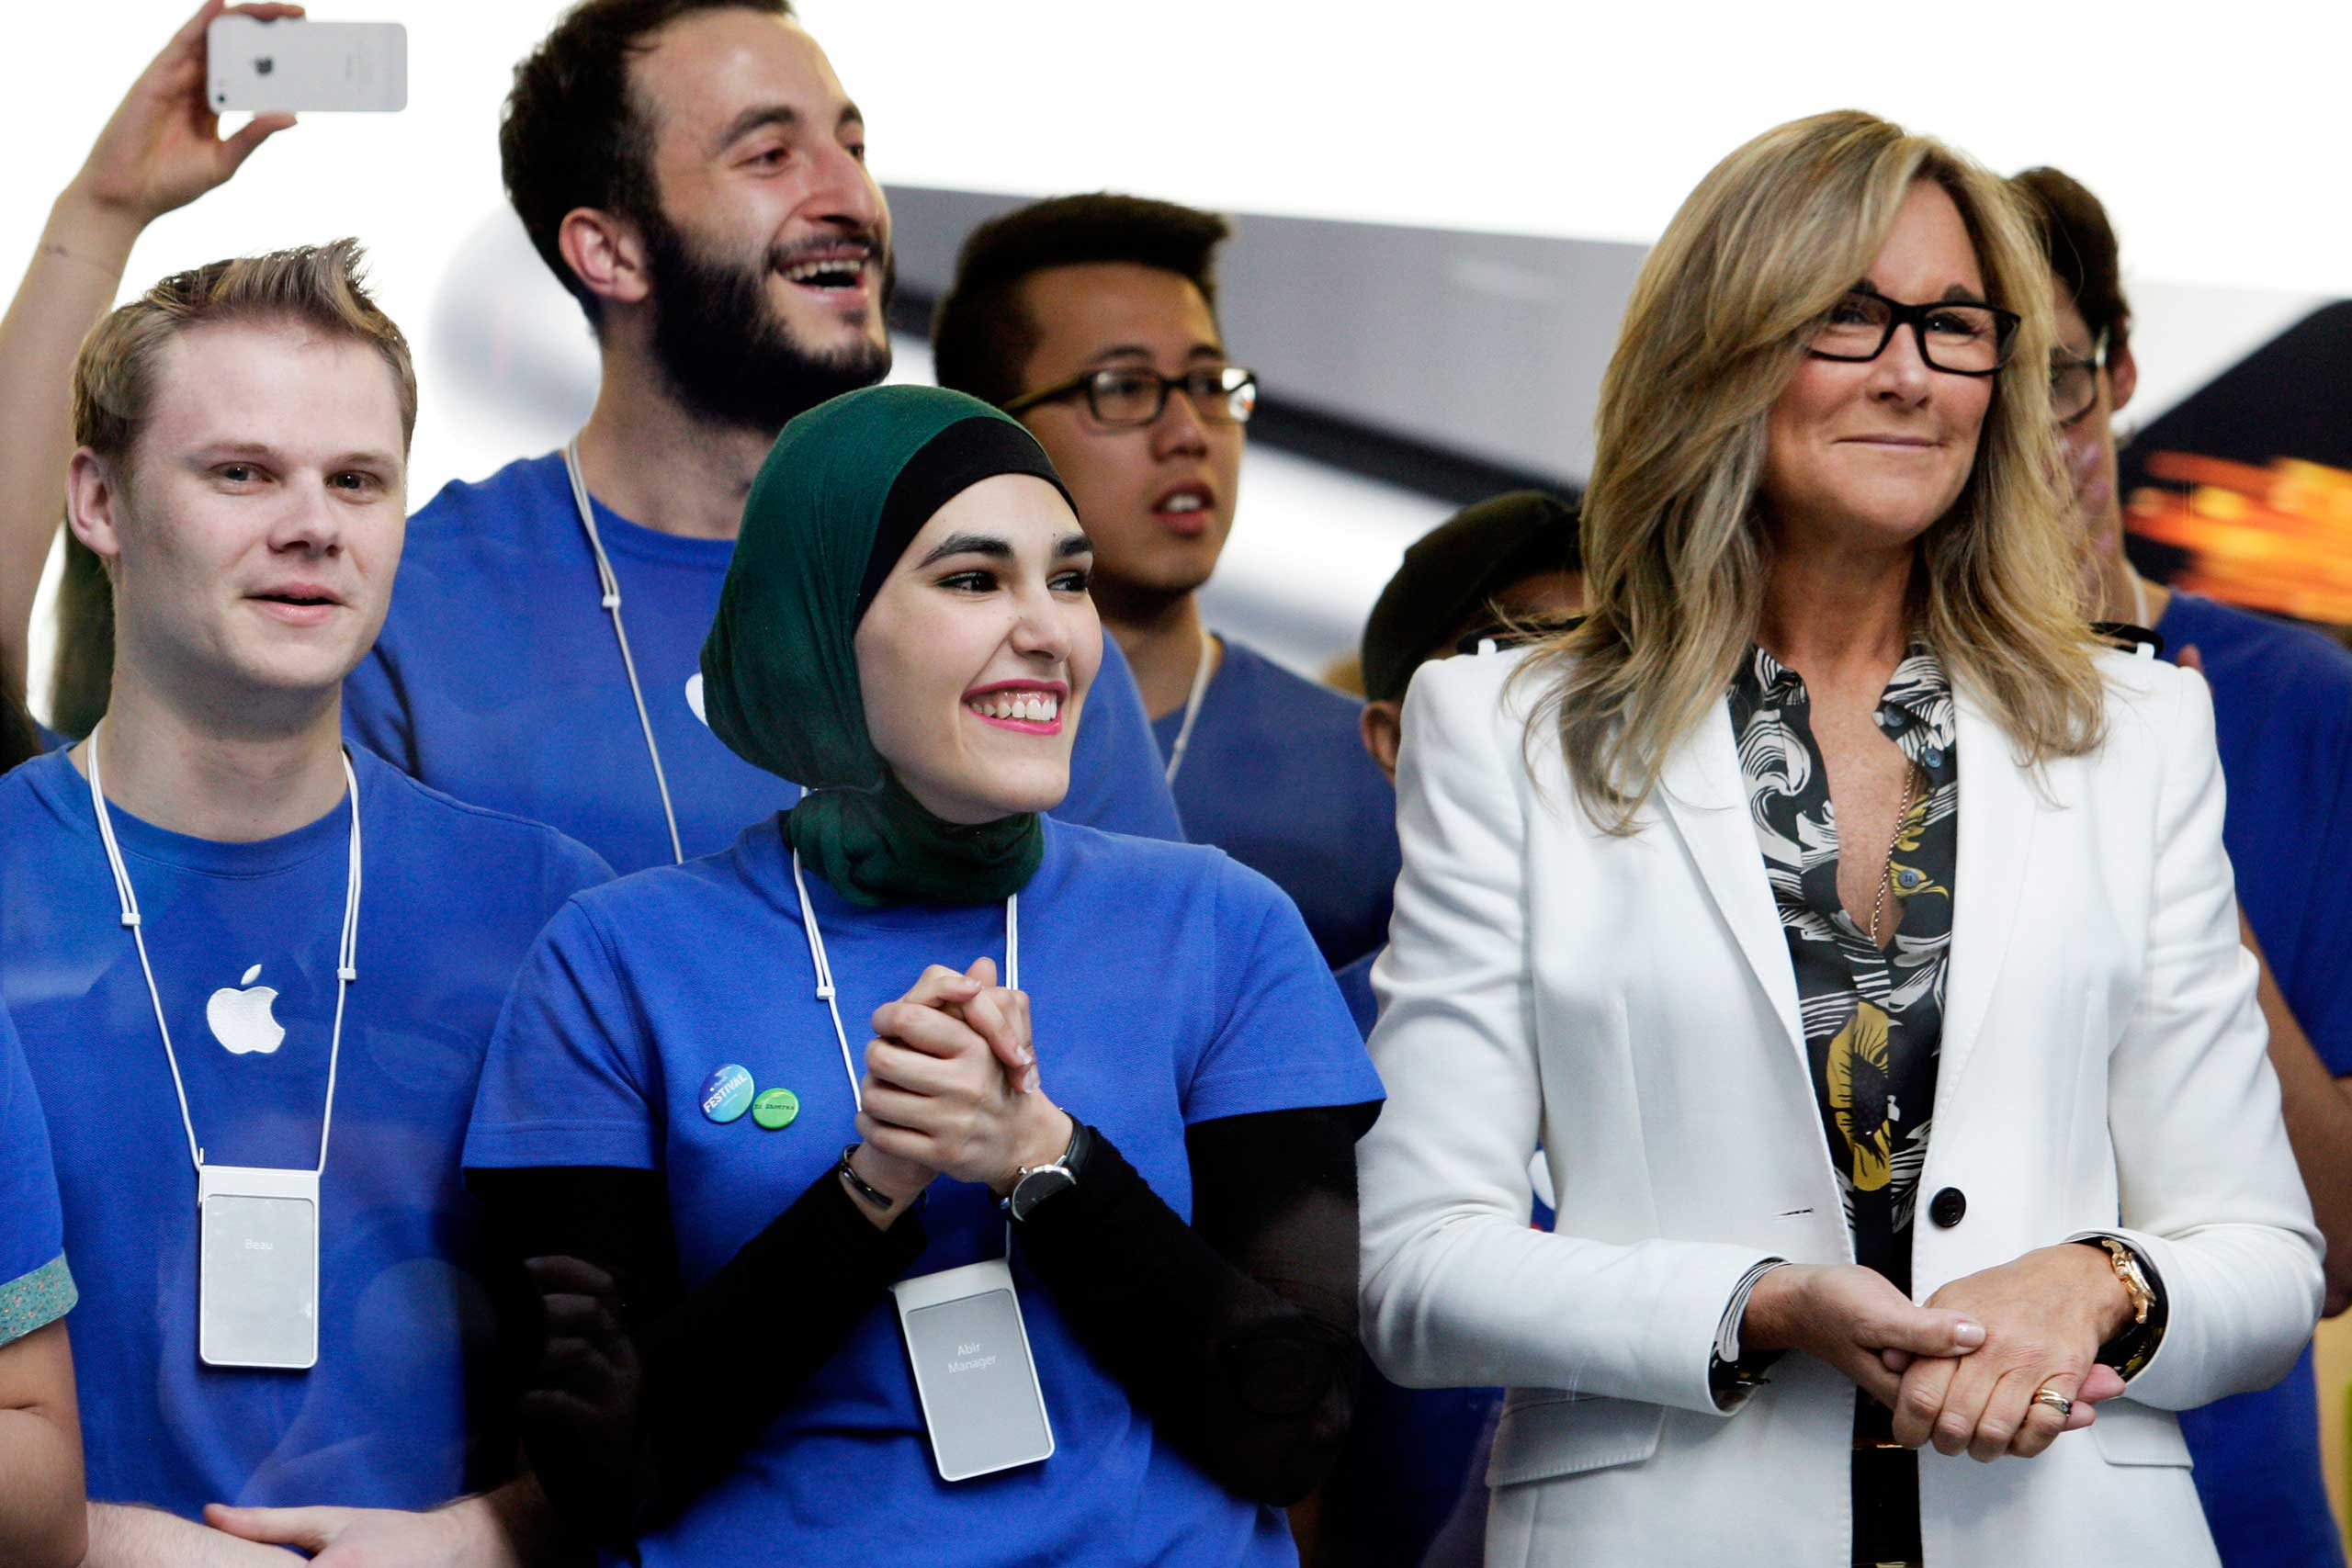 Angela Ahrendts, senior vice president of retail and online stores at Apple Inc., right, and employees look on before opening the doors to the company's George Street store for the sales launch of the iPhone 6 and iPhone 6 Plus in Sydney on Sept. 19, 2014.